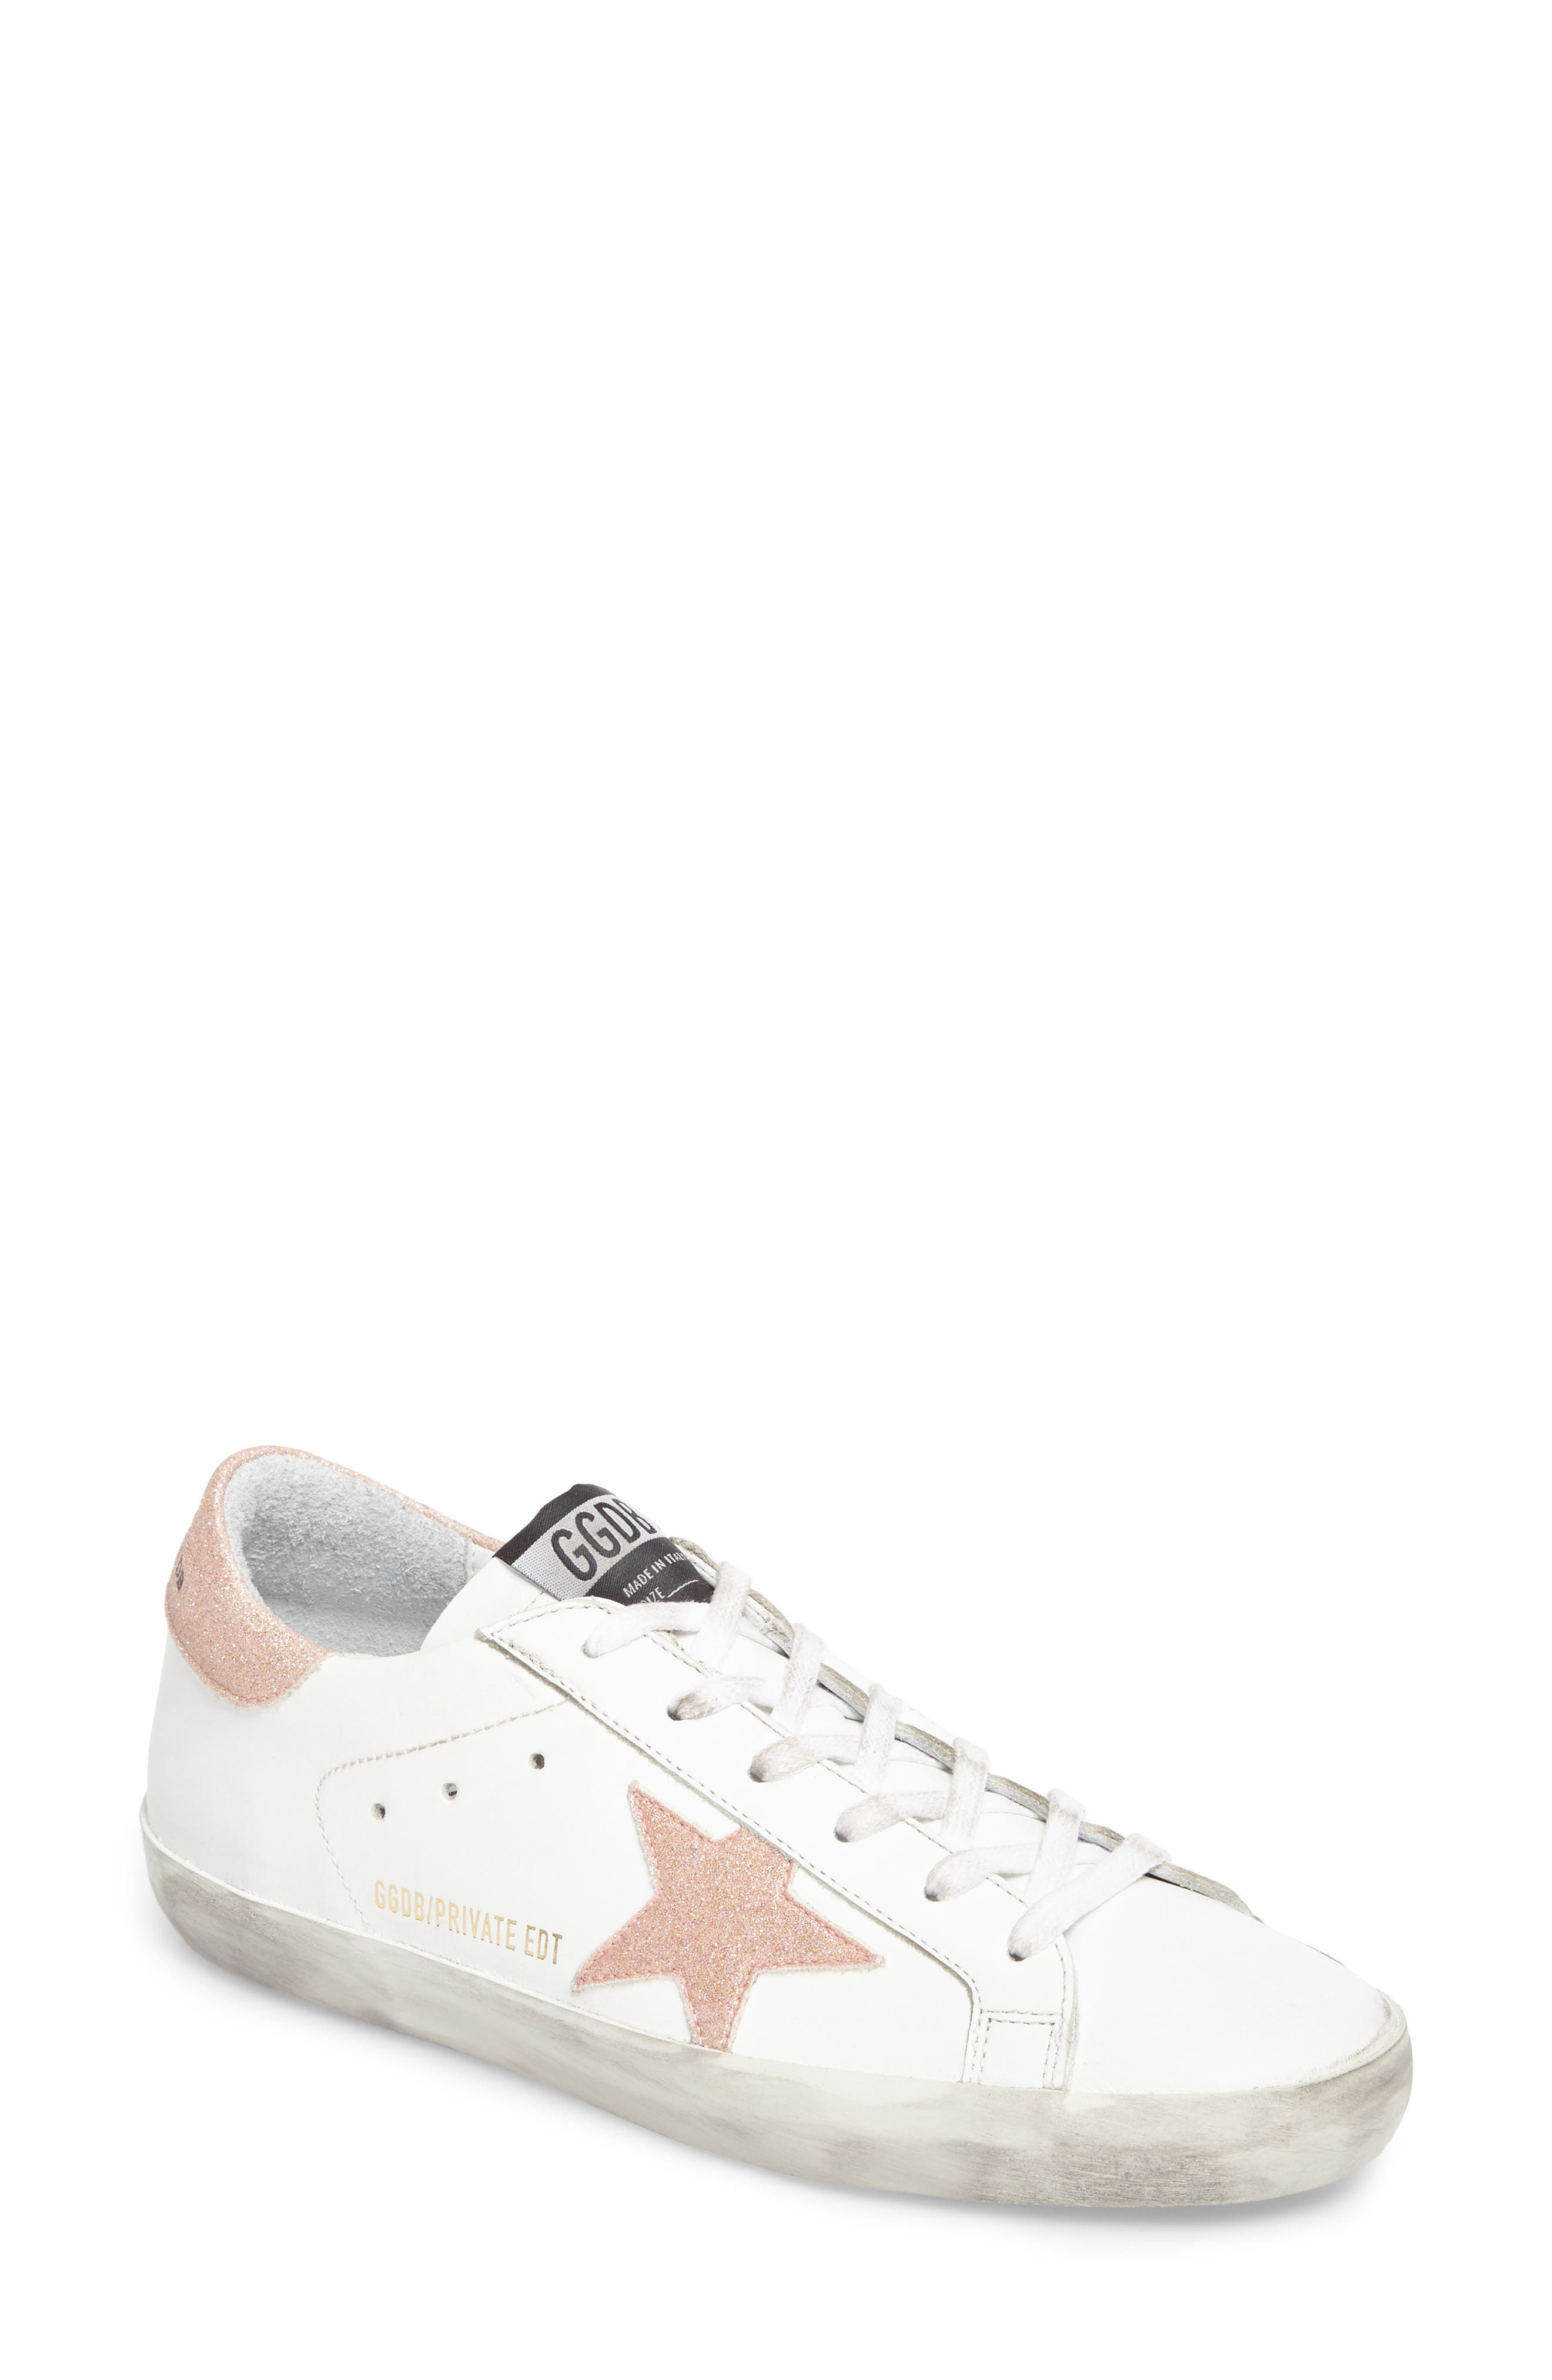 Superstar Low Top Sneaker,                             Main thumbnail 1, color,